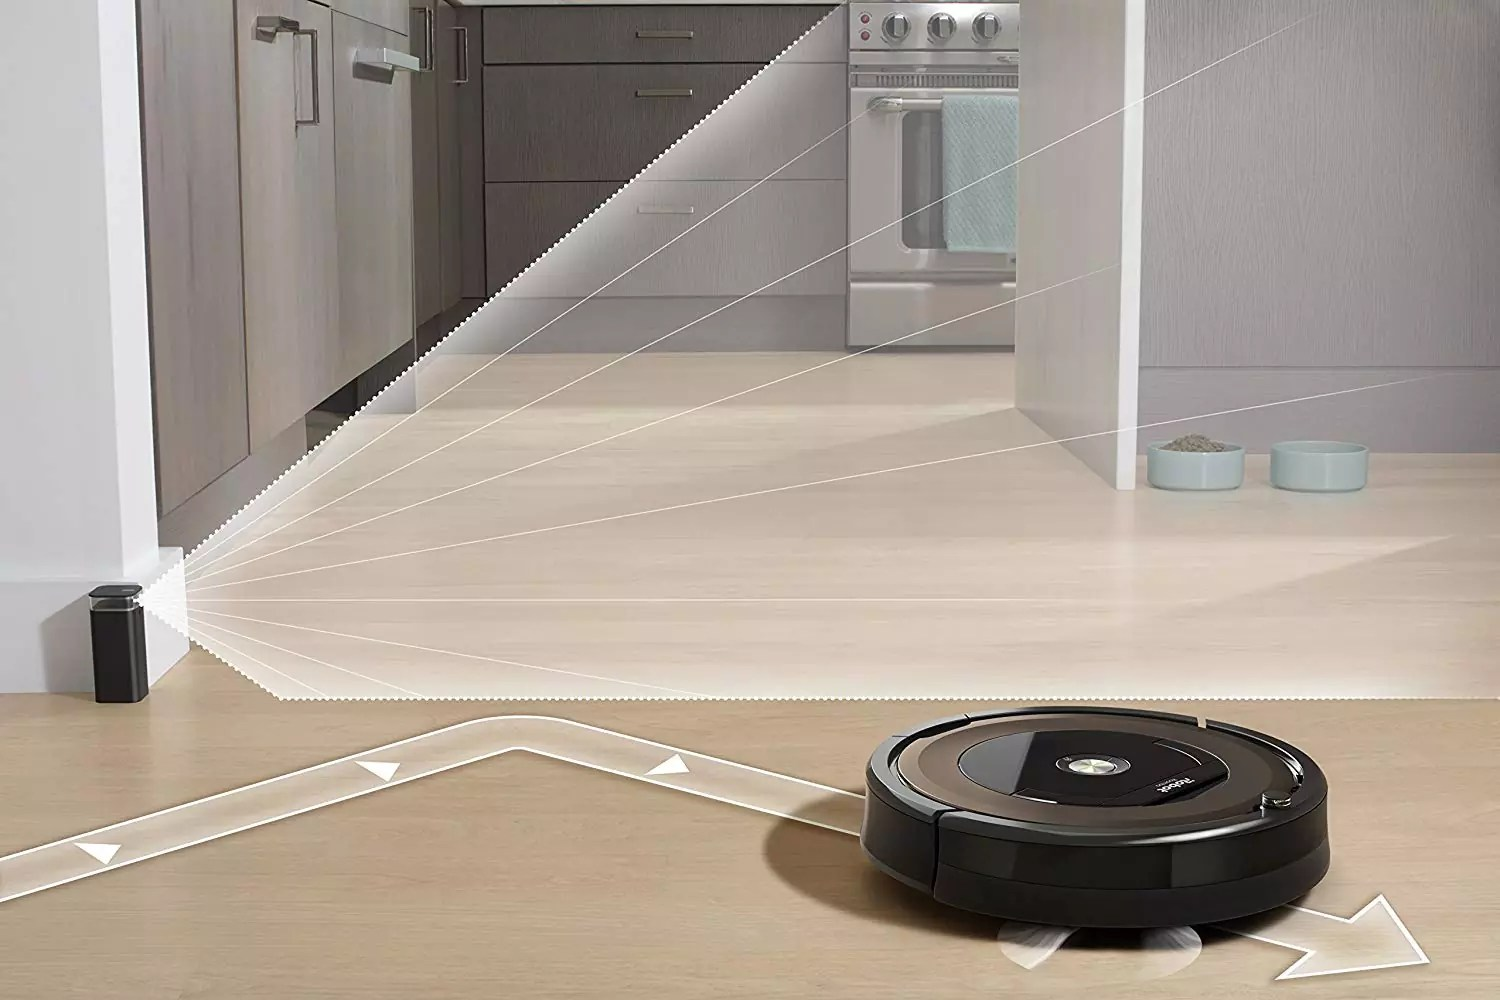 Premium 3-stage cleaning system